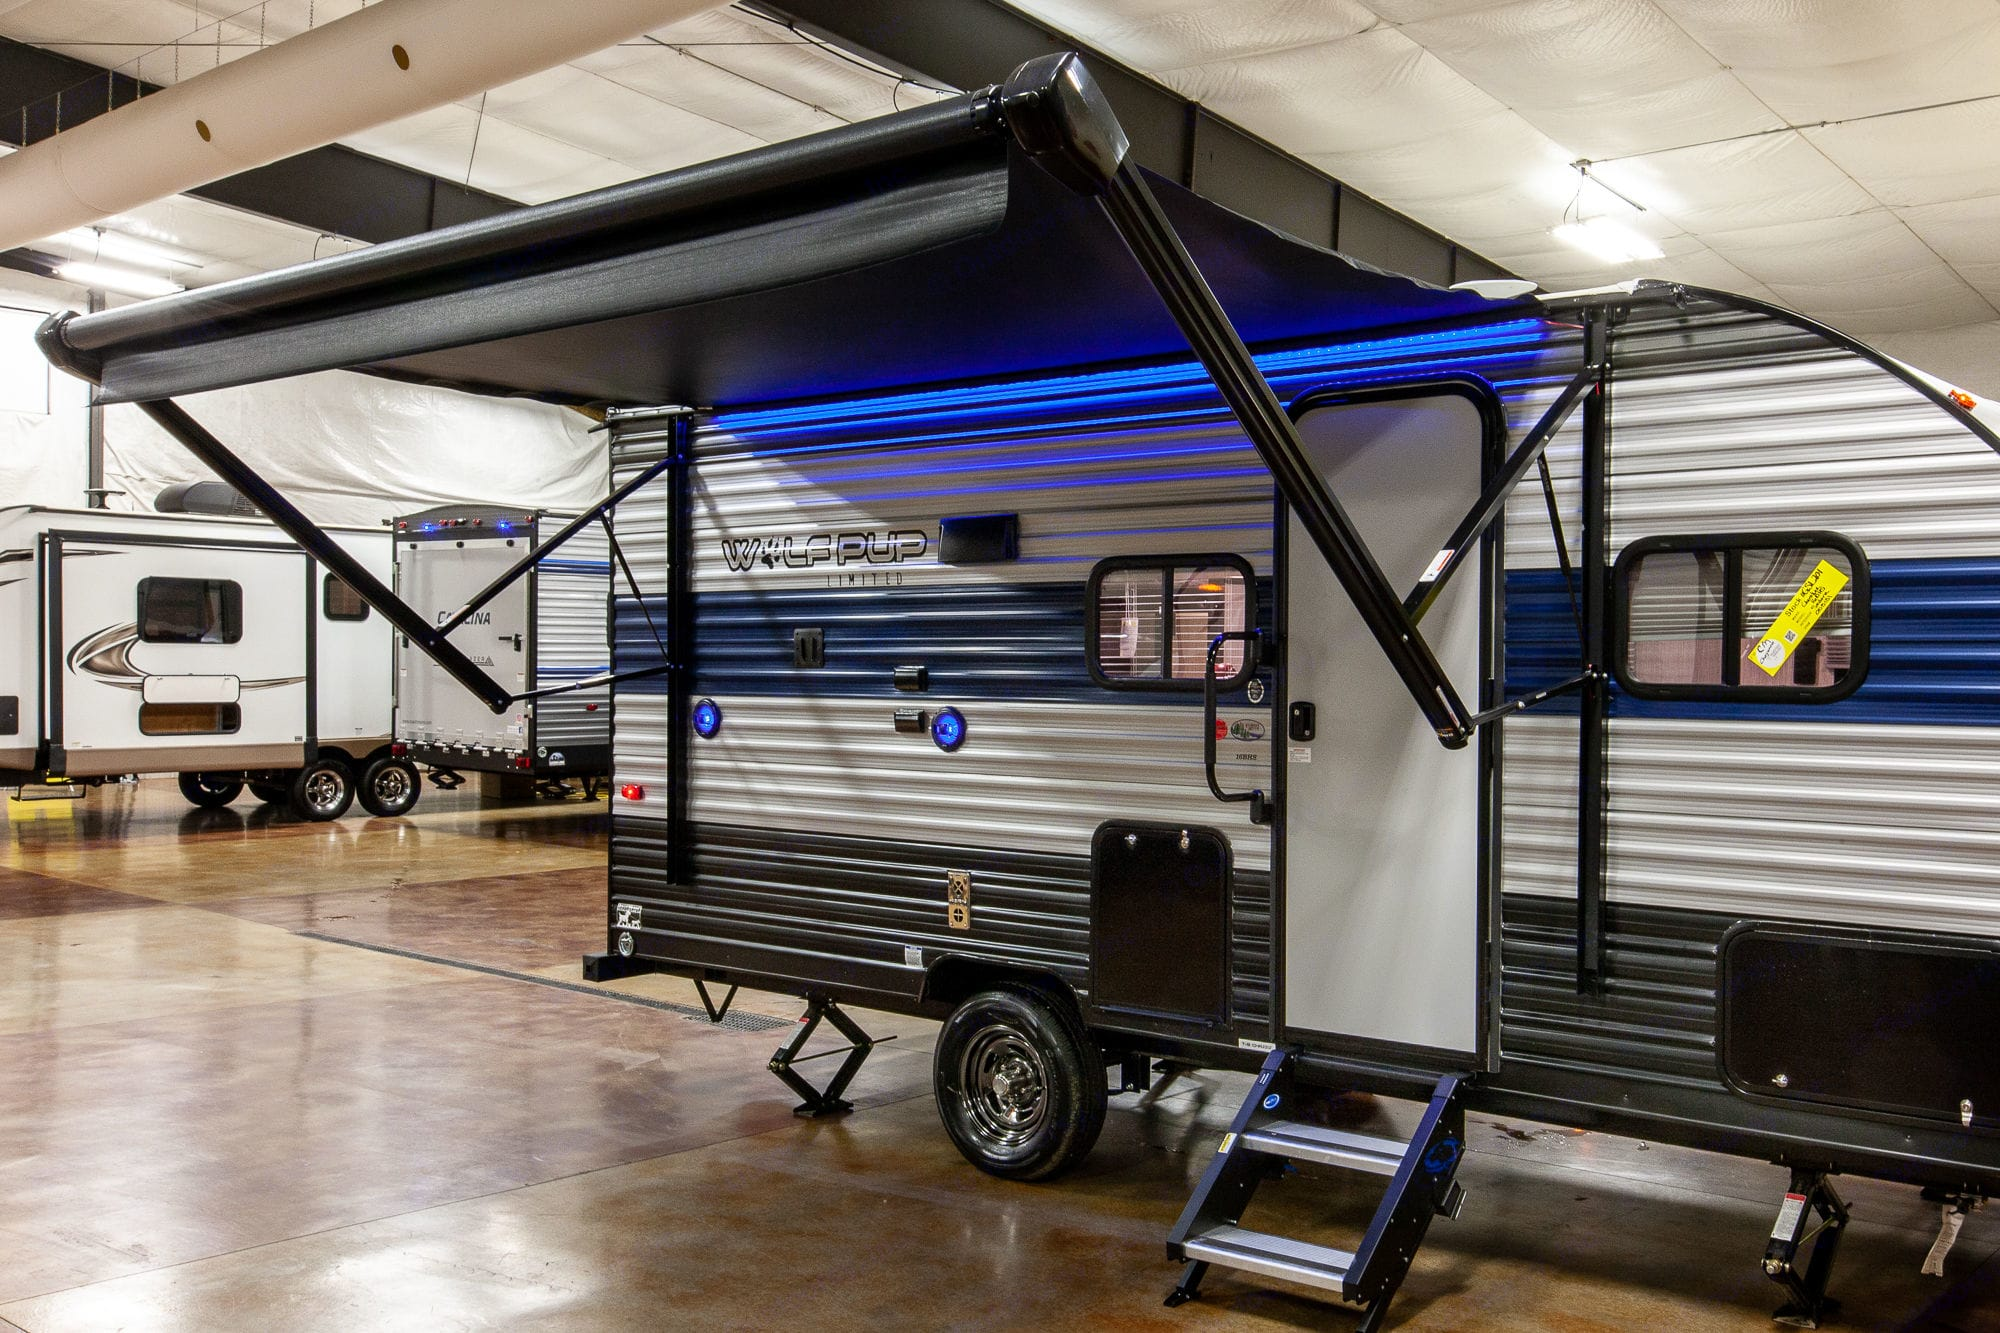 Awning Extended Fully. Forest River Cherokee Wolf Pup 2020